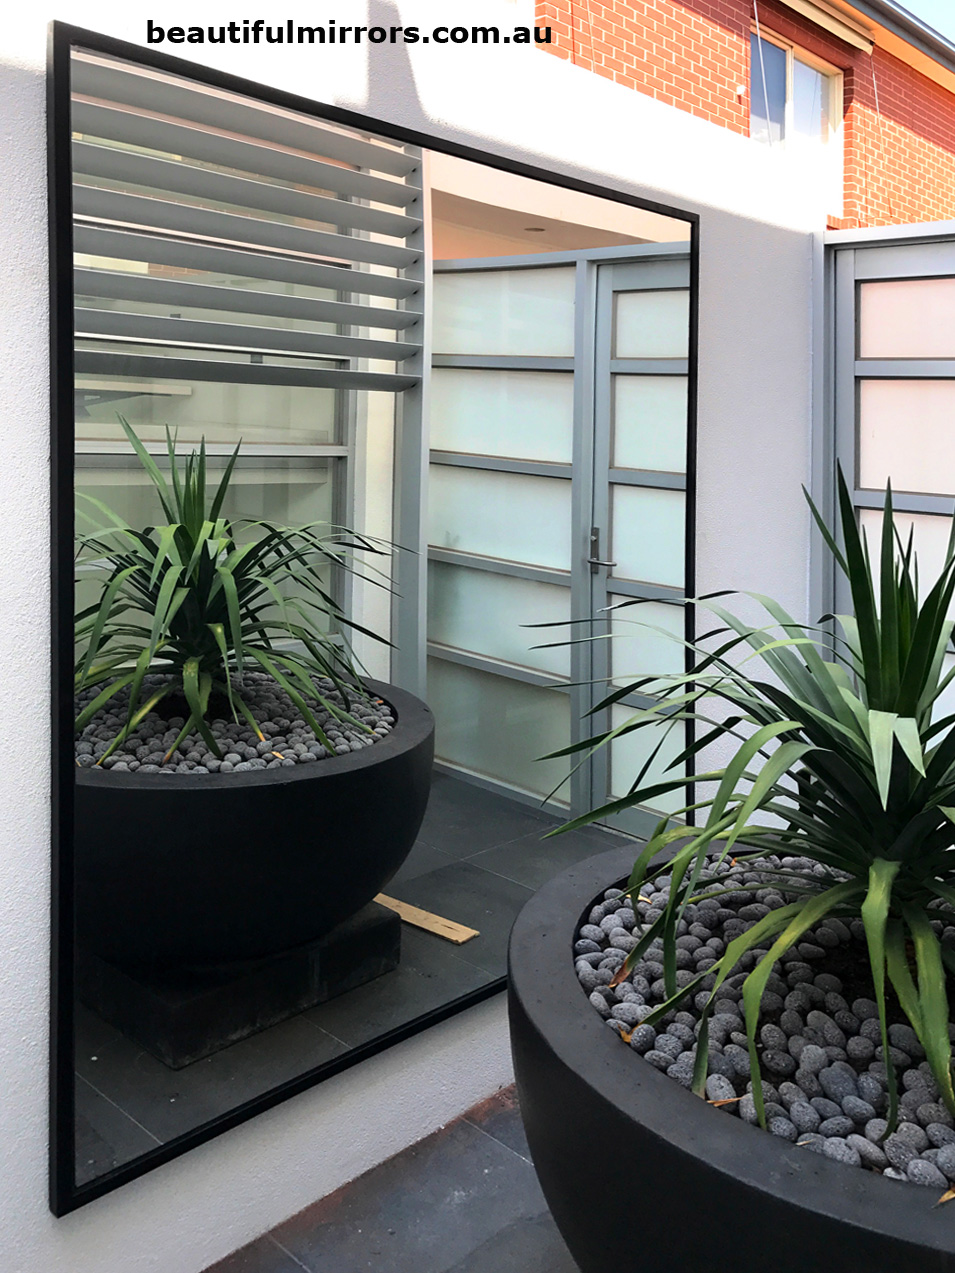 Beautiful Mirrors Outdoor Mirrors Melbourne Malvern